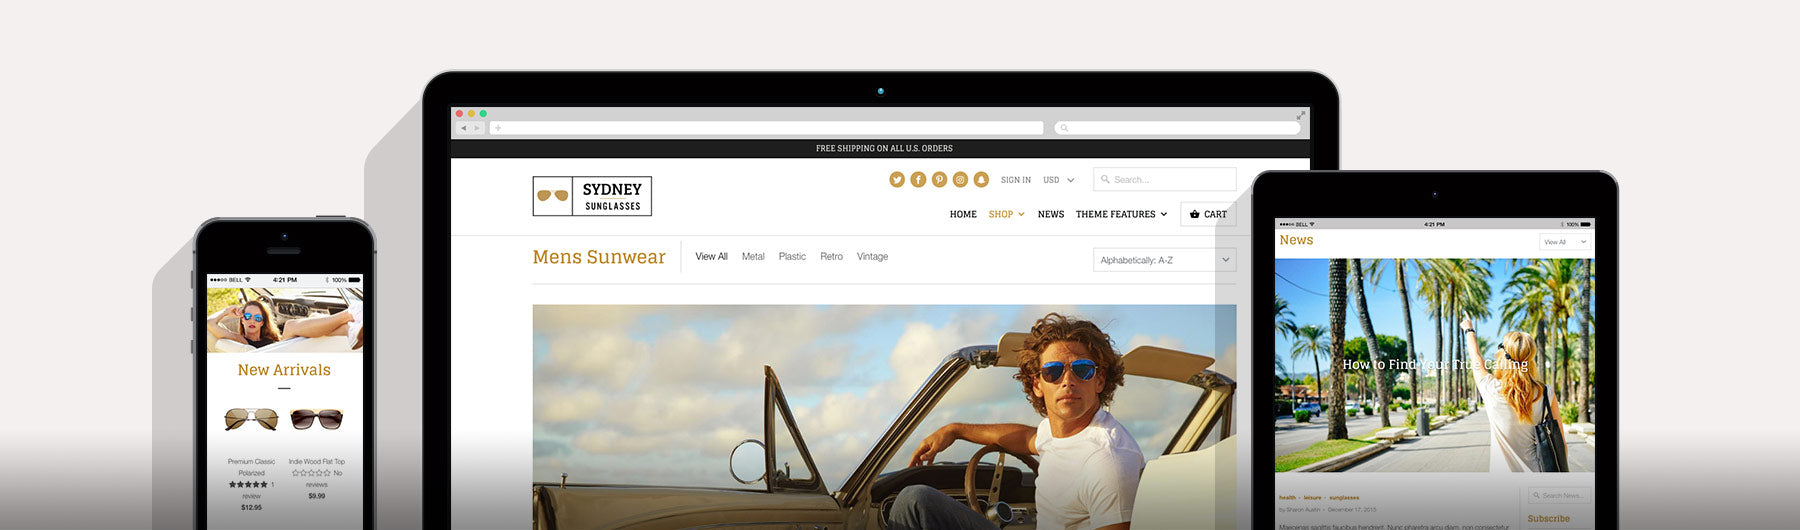 Mobilia shopify theme sydney out of the sandbox for Mobilia instagram